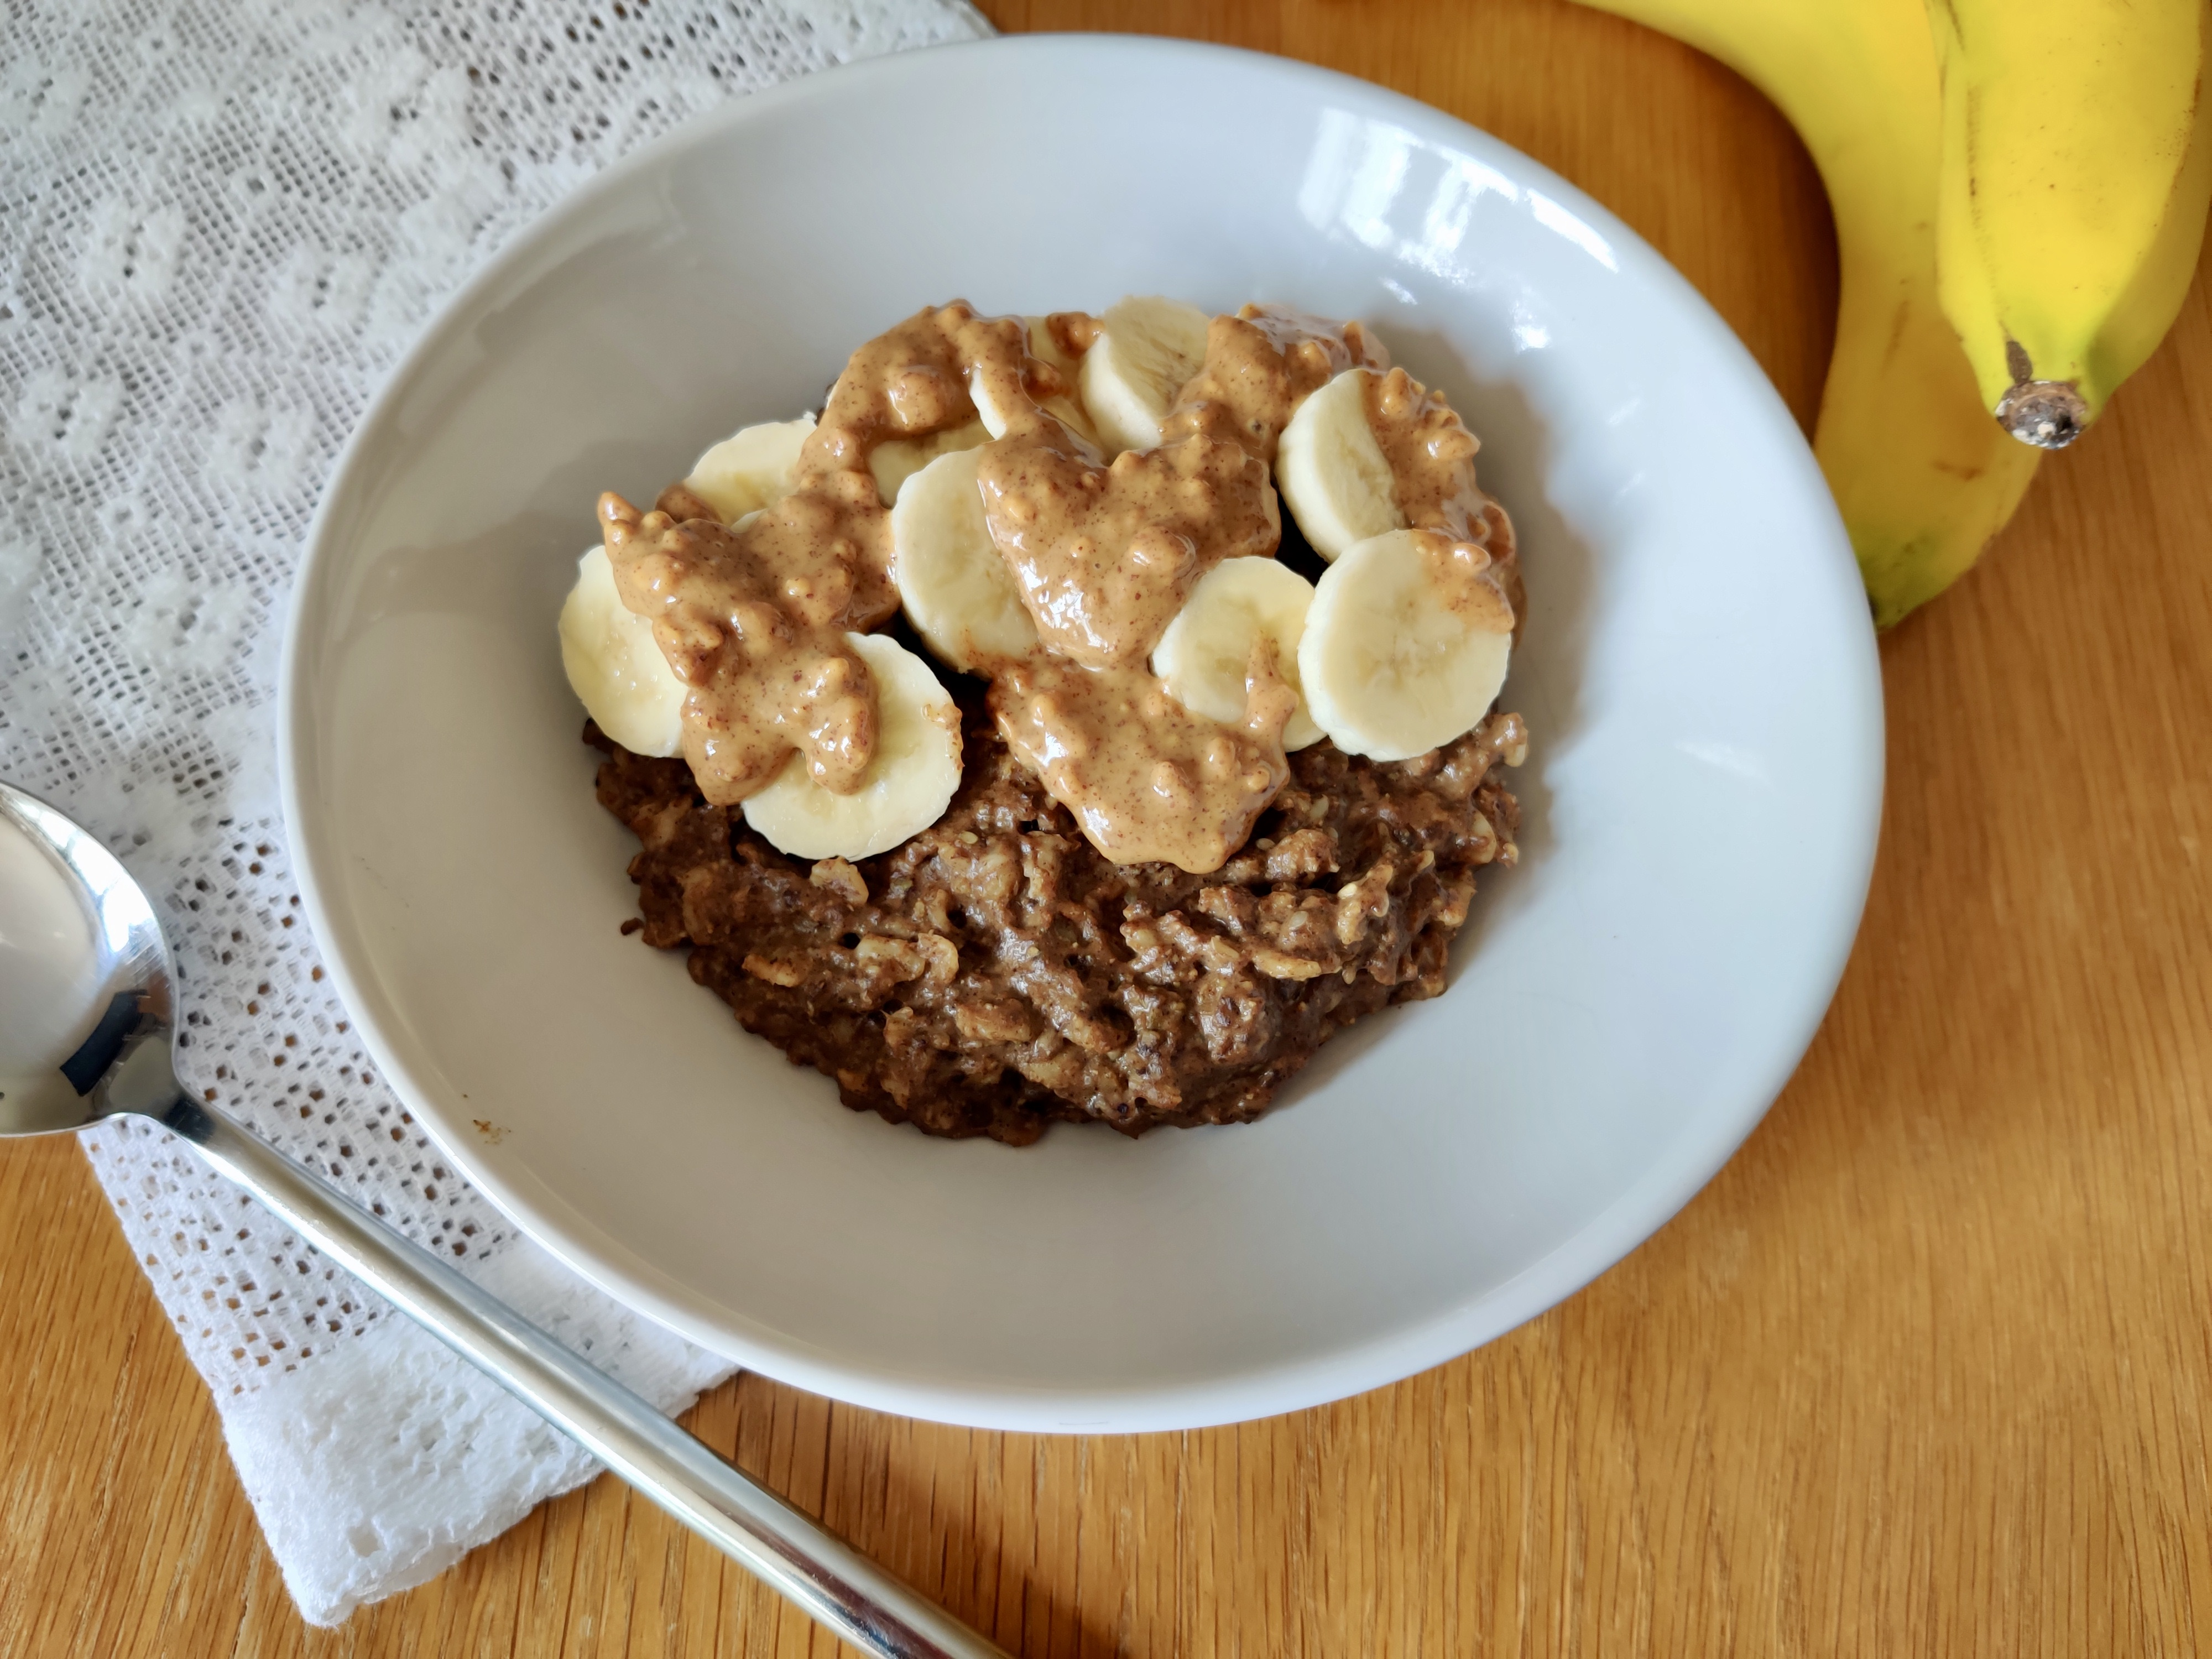 Using Cocoa Purition to flavour your porridge creates a yummy gluten-free breakfast.